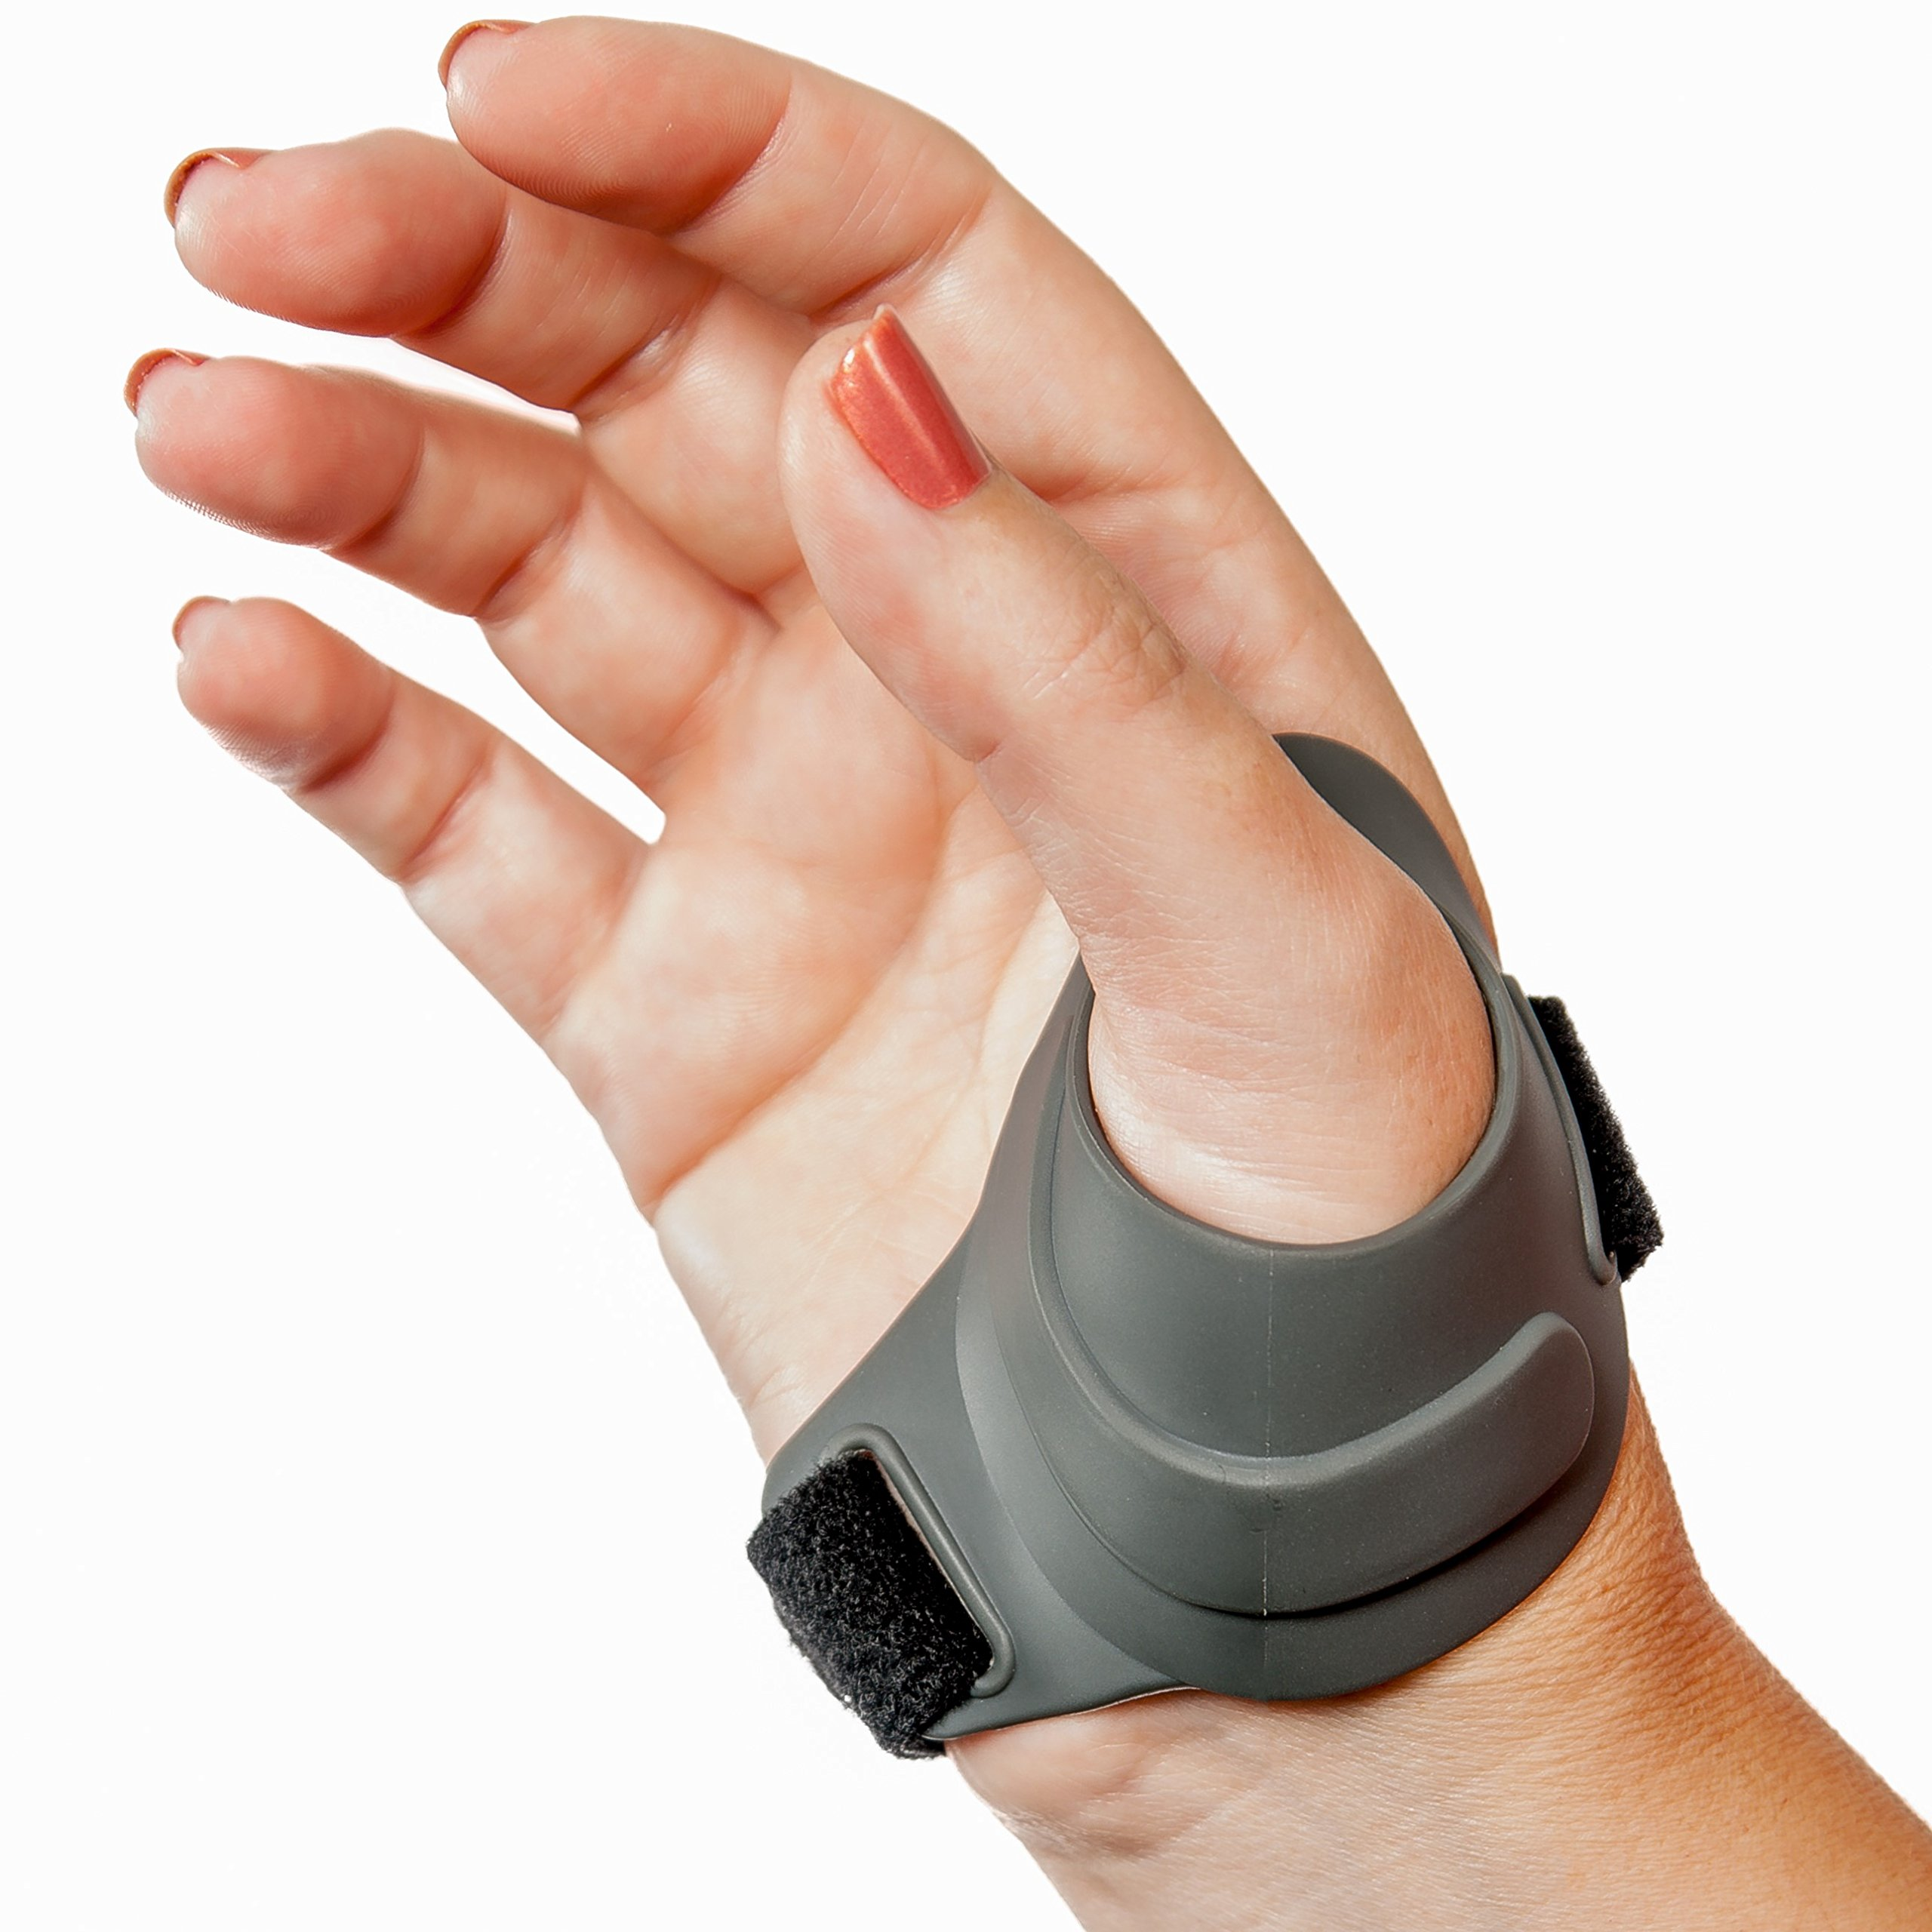 CMCcare Thumb Brace - Durable, Waterproof Brace for Thumb Arthritis Pain Relief, Left Hand, Size Small